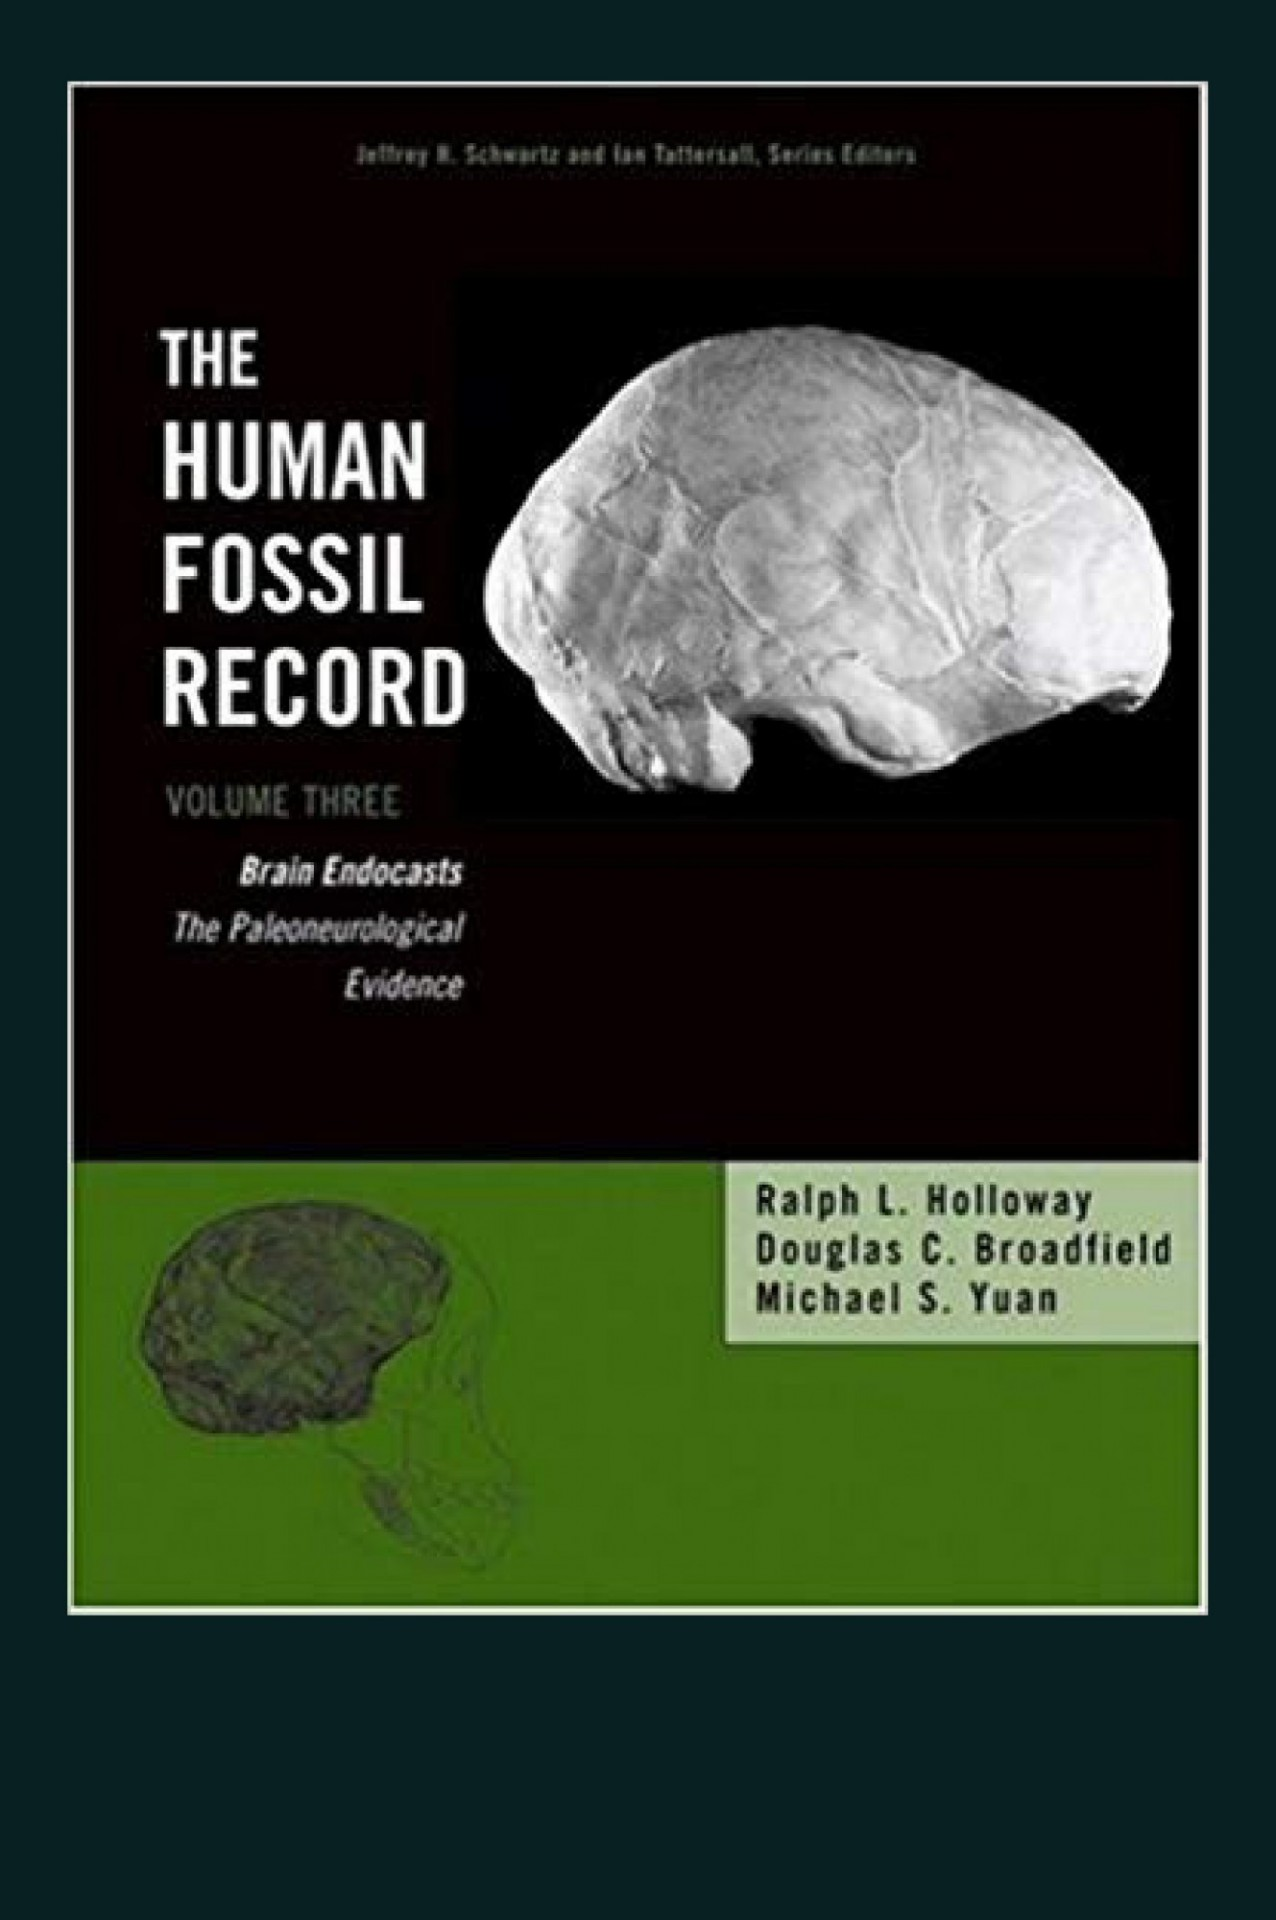 Book Cover: Ralph Holloway, The Human Fossil Record